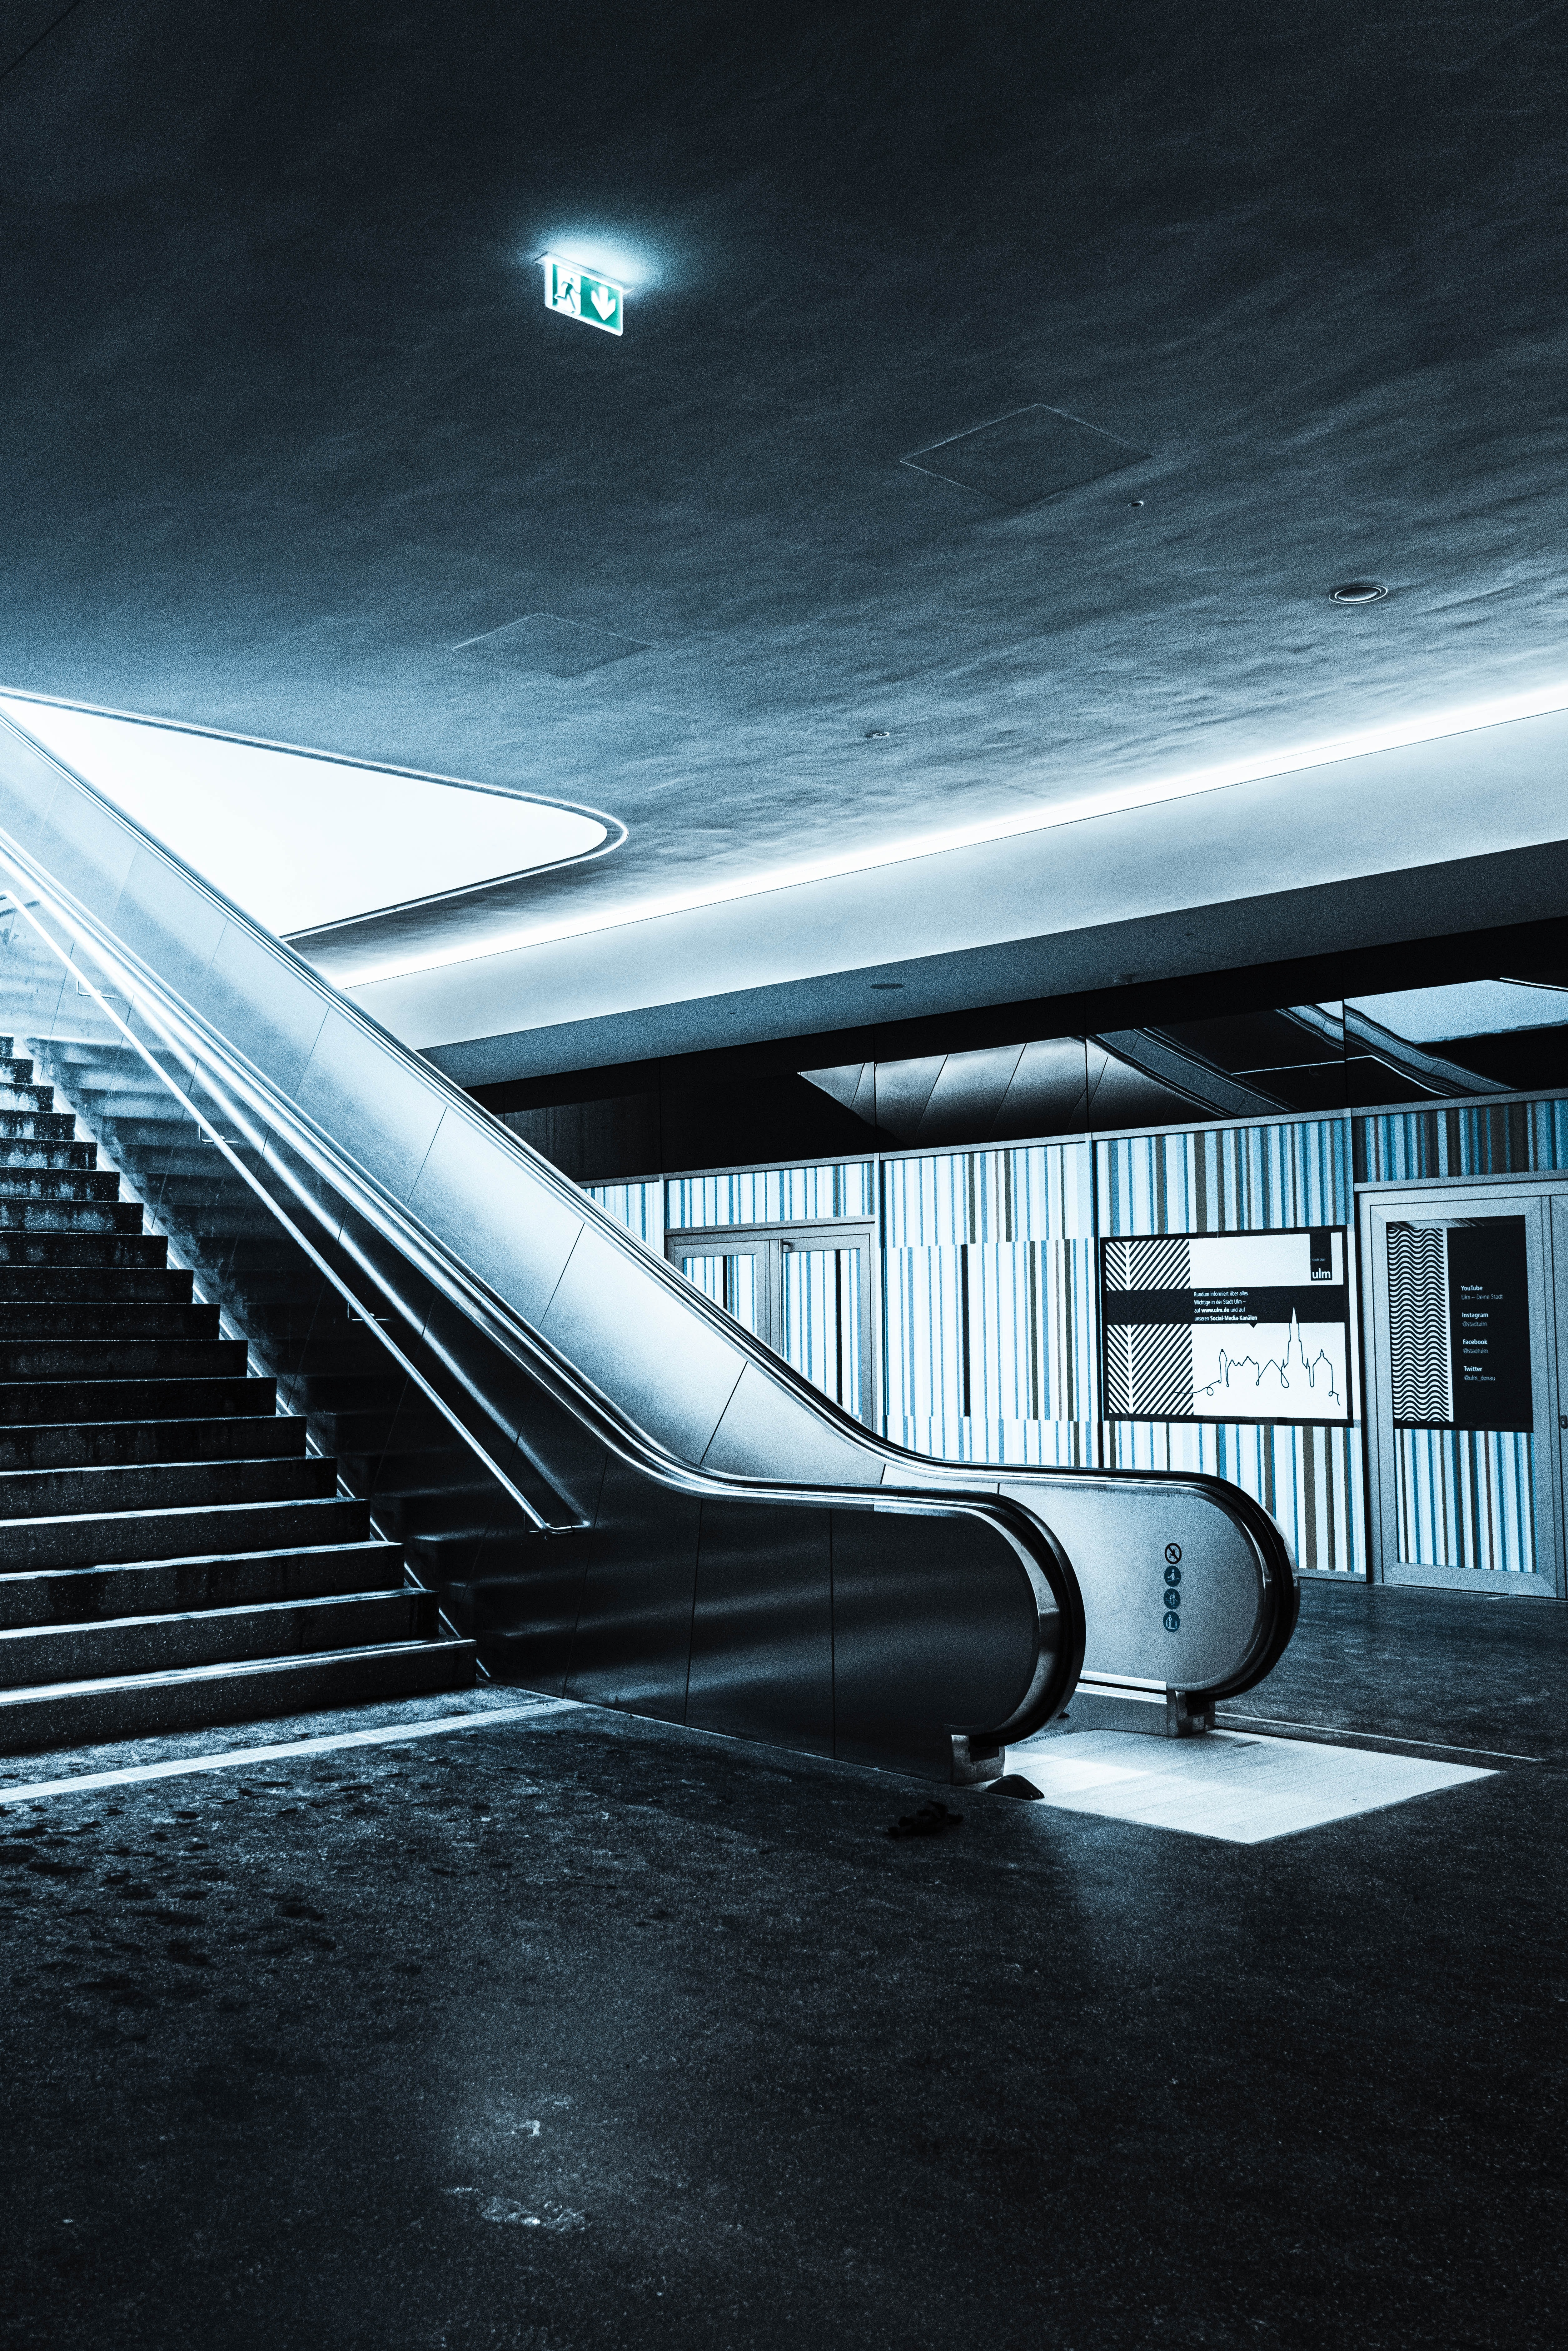 136101 Screensavers and Wallpapers Metro for phone. Download Miscellanea, Miscellaneous, Stairs, Ladder, Steps, Railings, Handrail, Metro, Subway, Escalator pictures for free